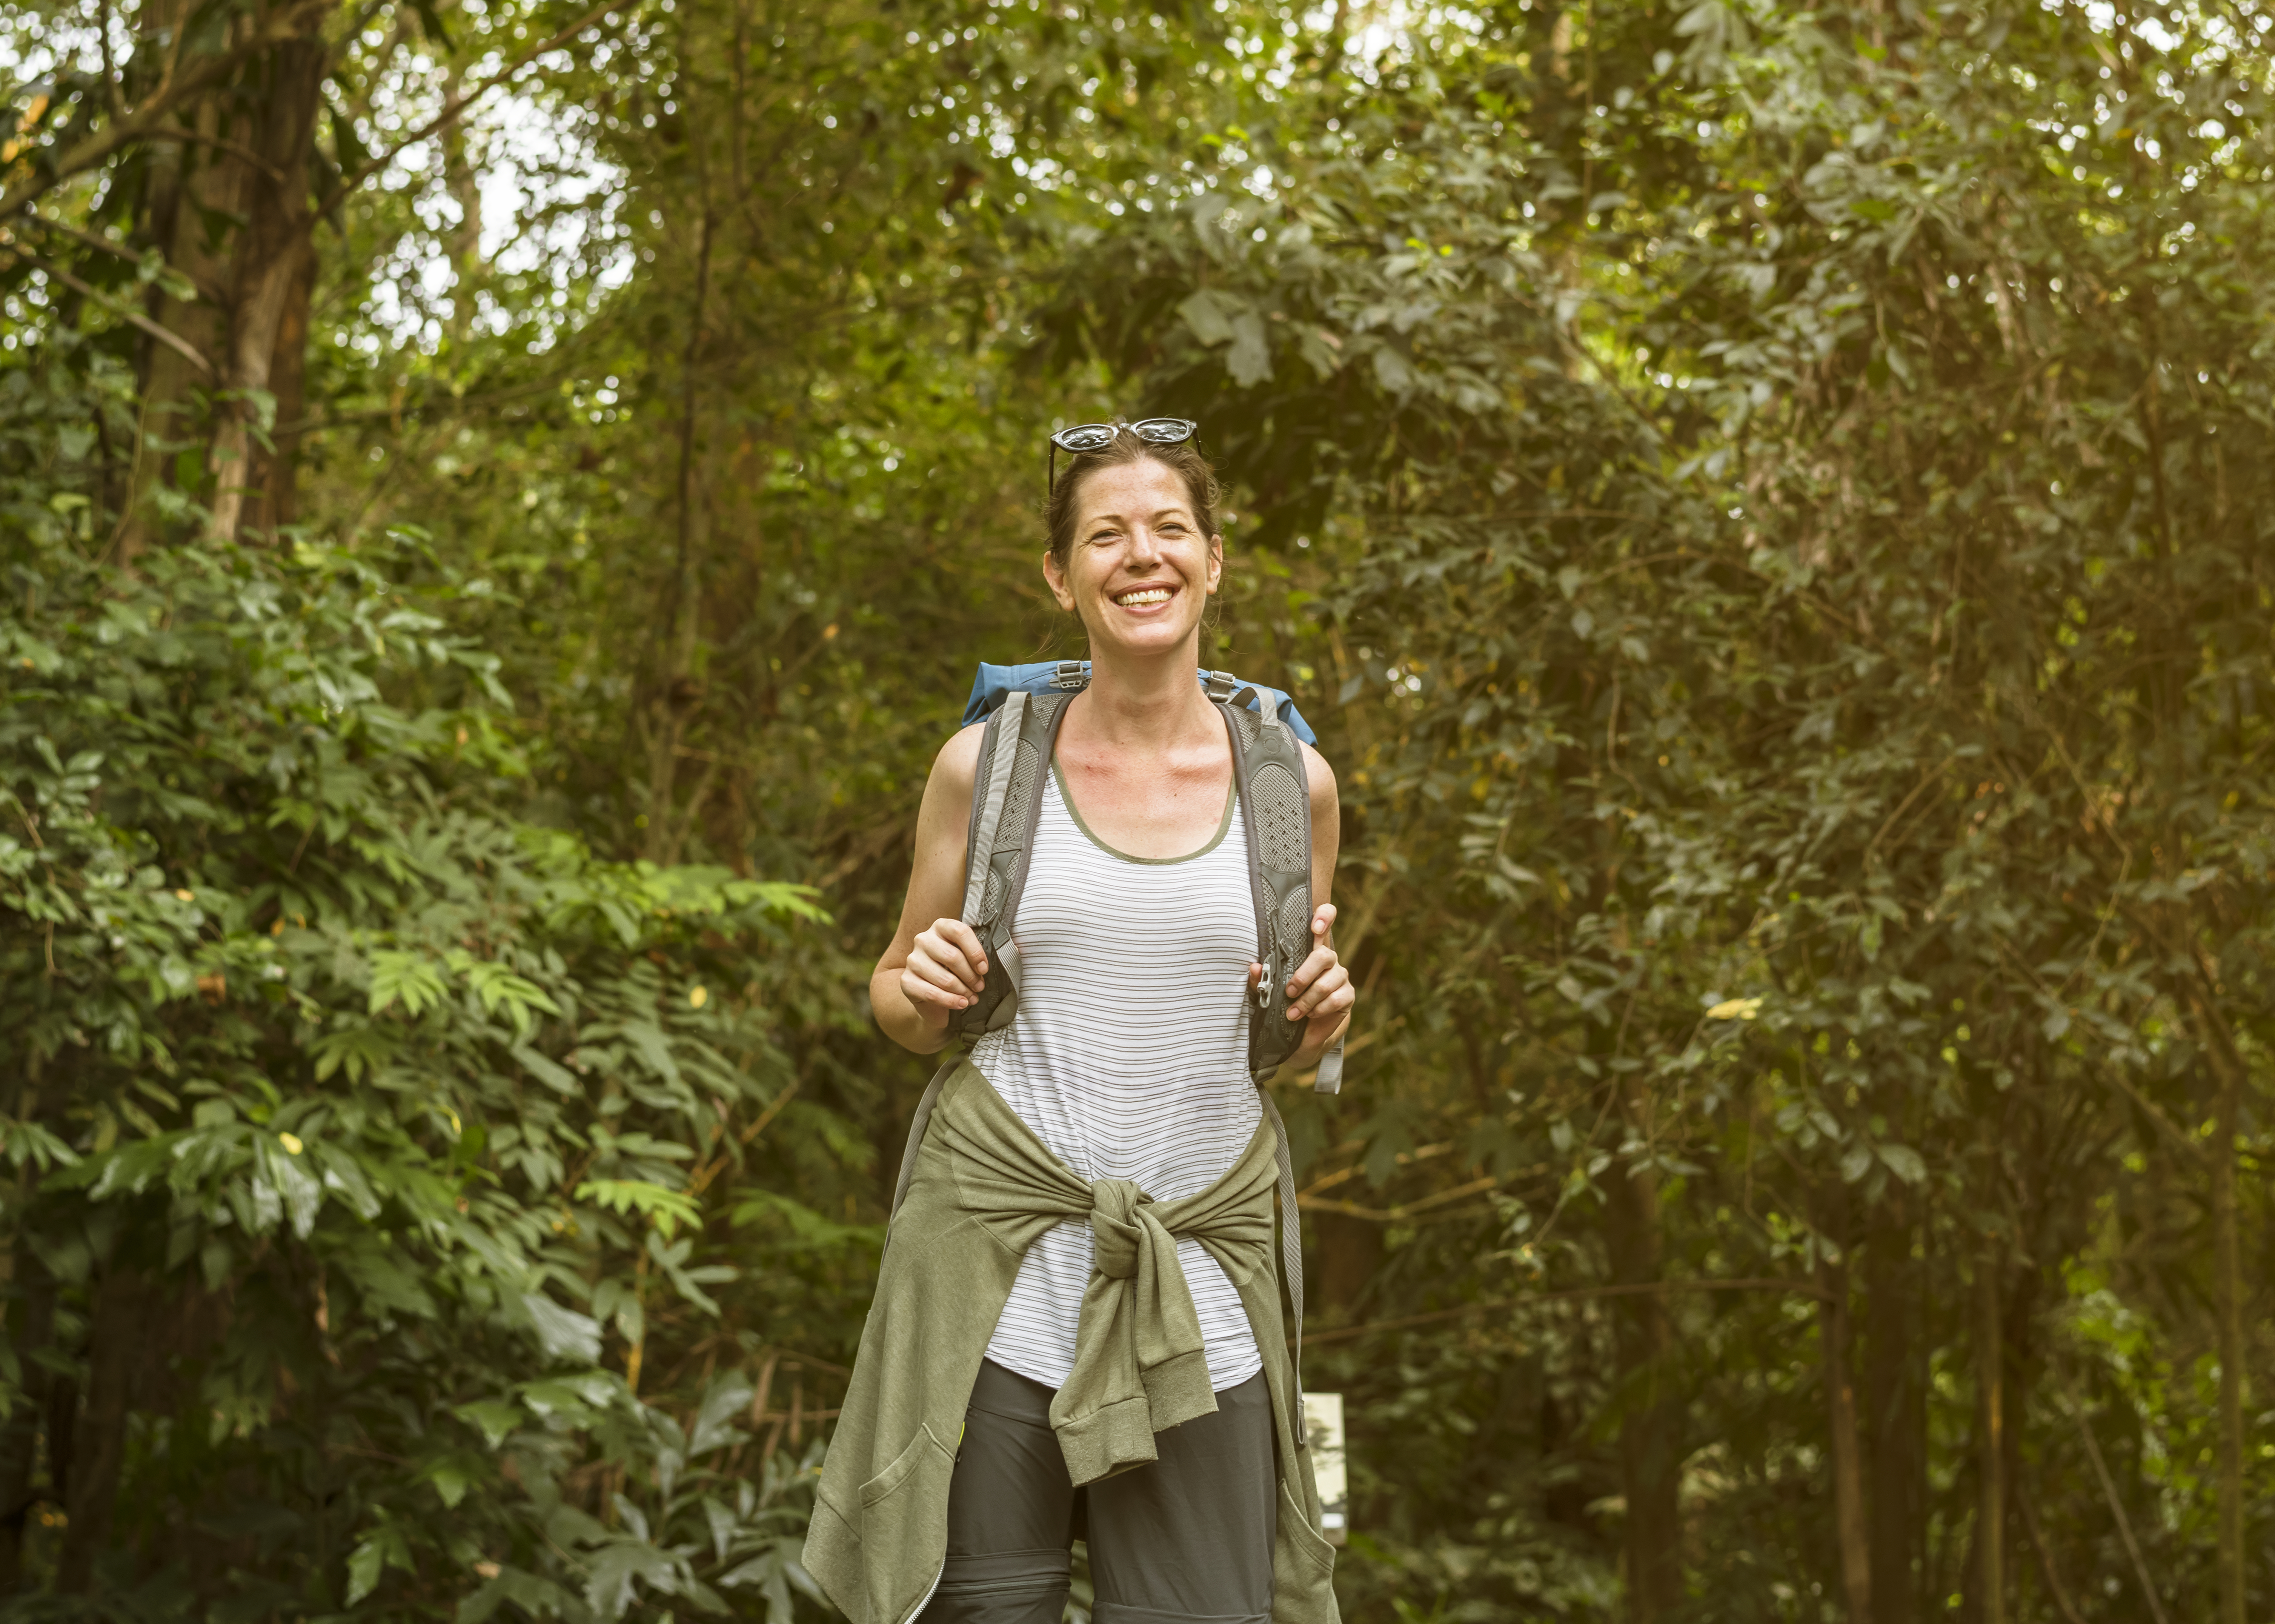 A solo female traveler smiling in a forest with her backpack.jpg